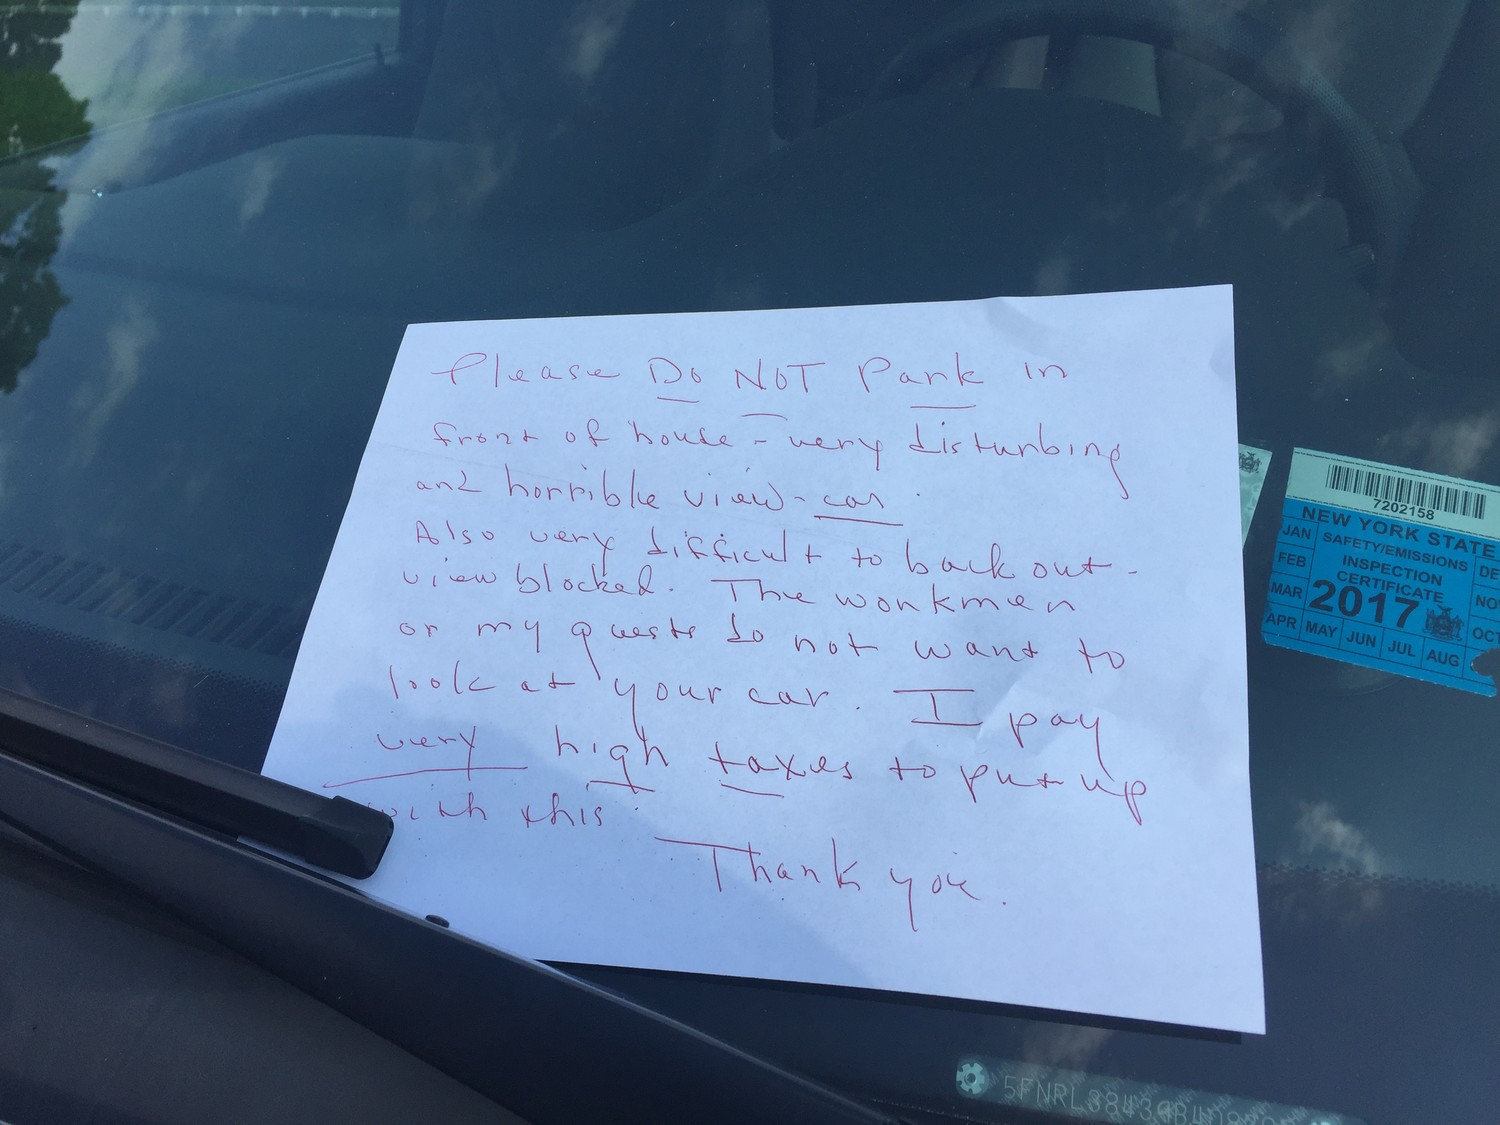 Angry residents have left notes, such as the one above, on cars parked legally on Bradford Court and Fountain Avenue